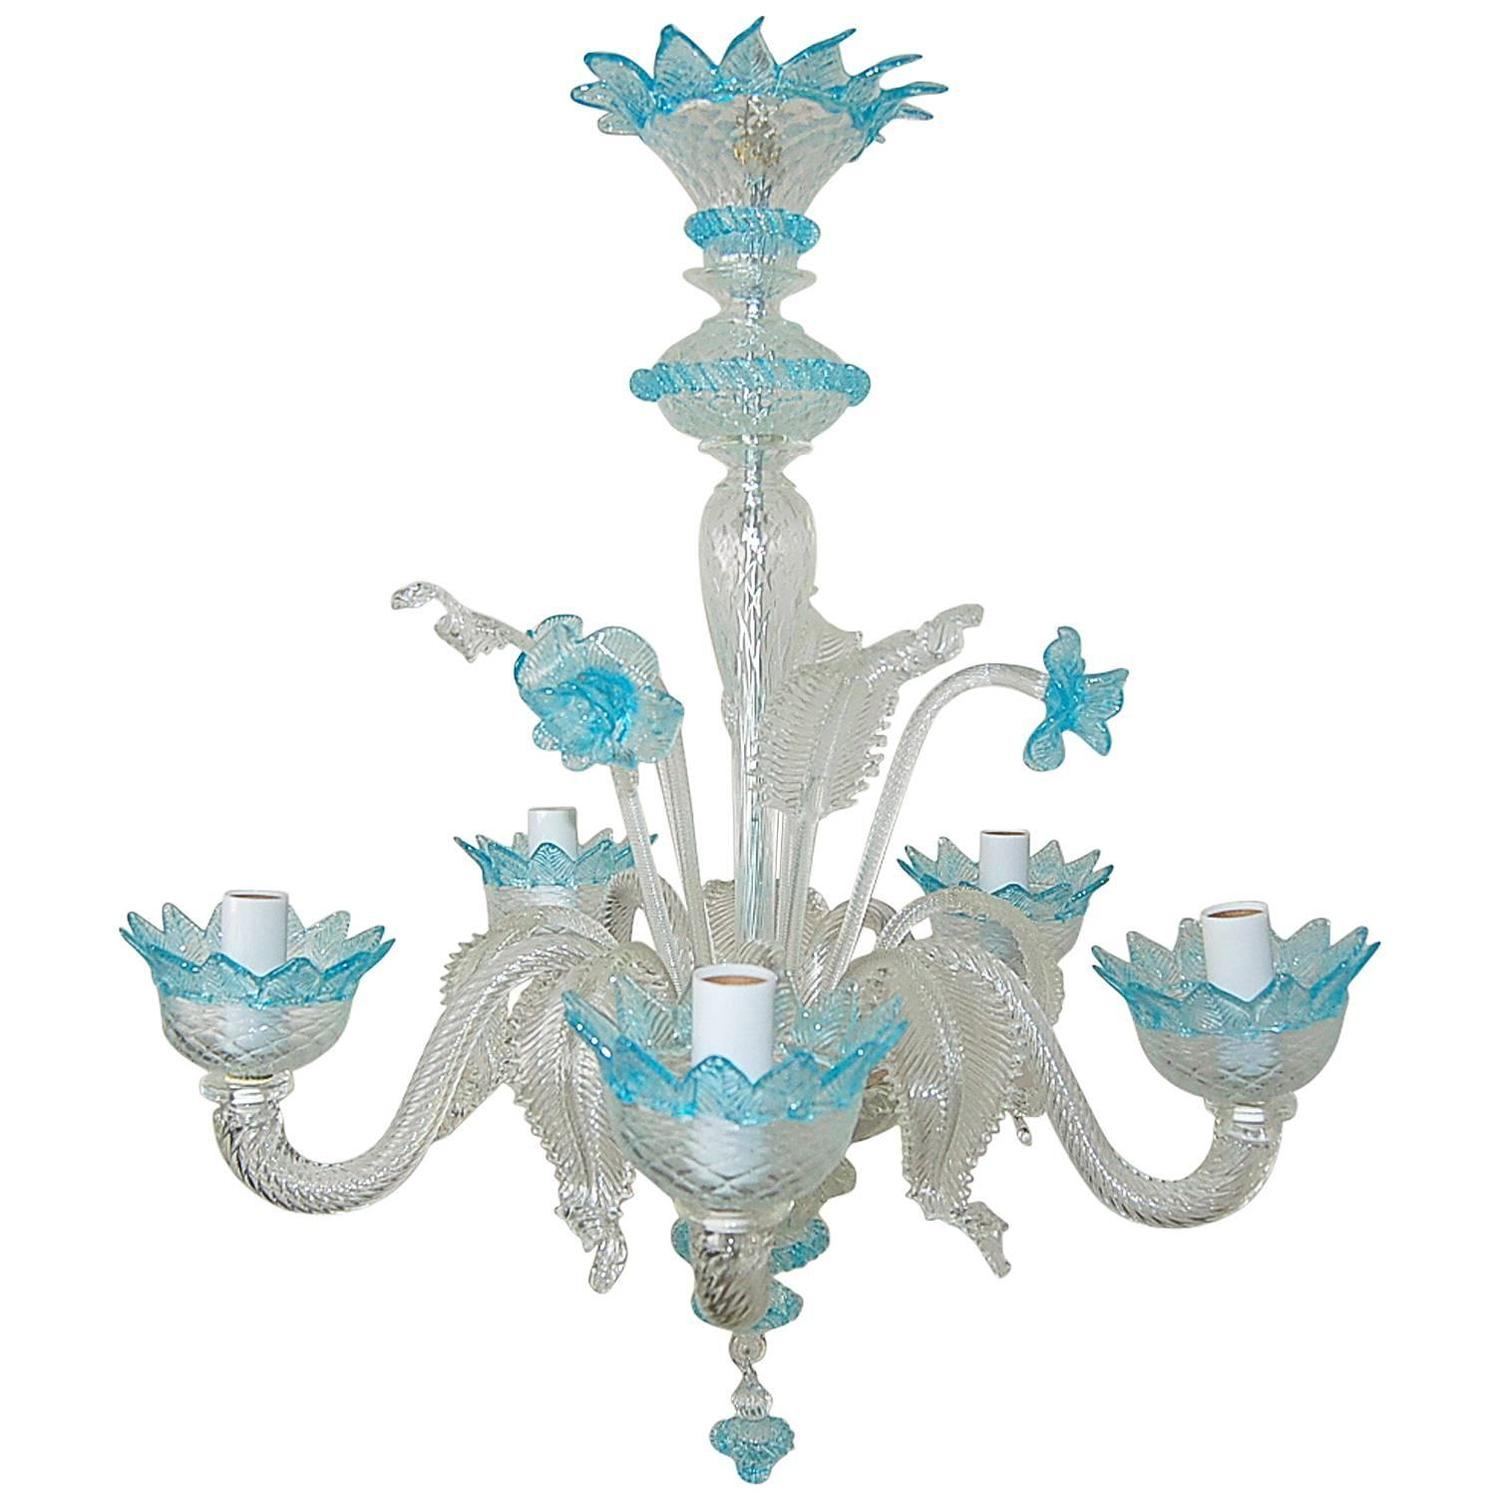 Chandelier Murano Glass of Crystal with Blue Accents at 1stdibs